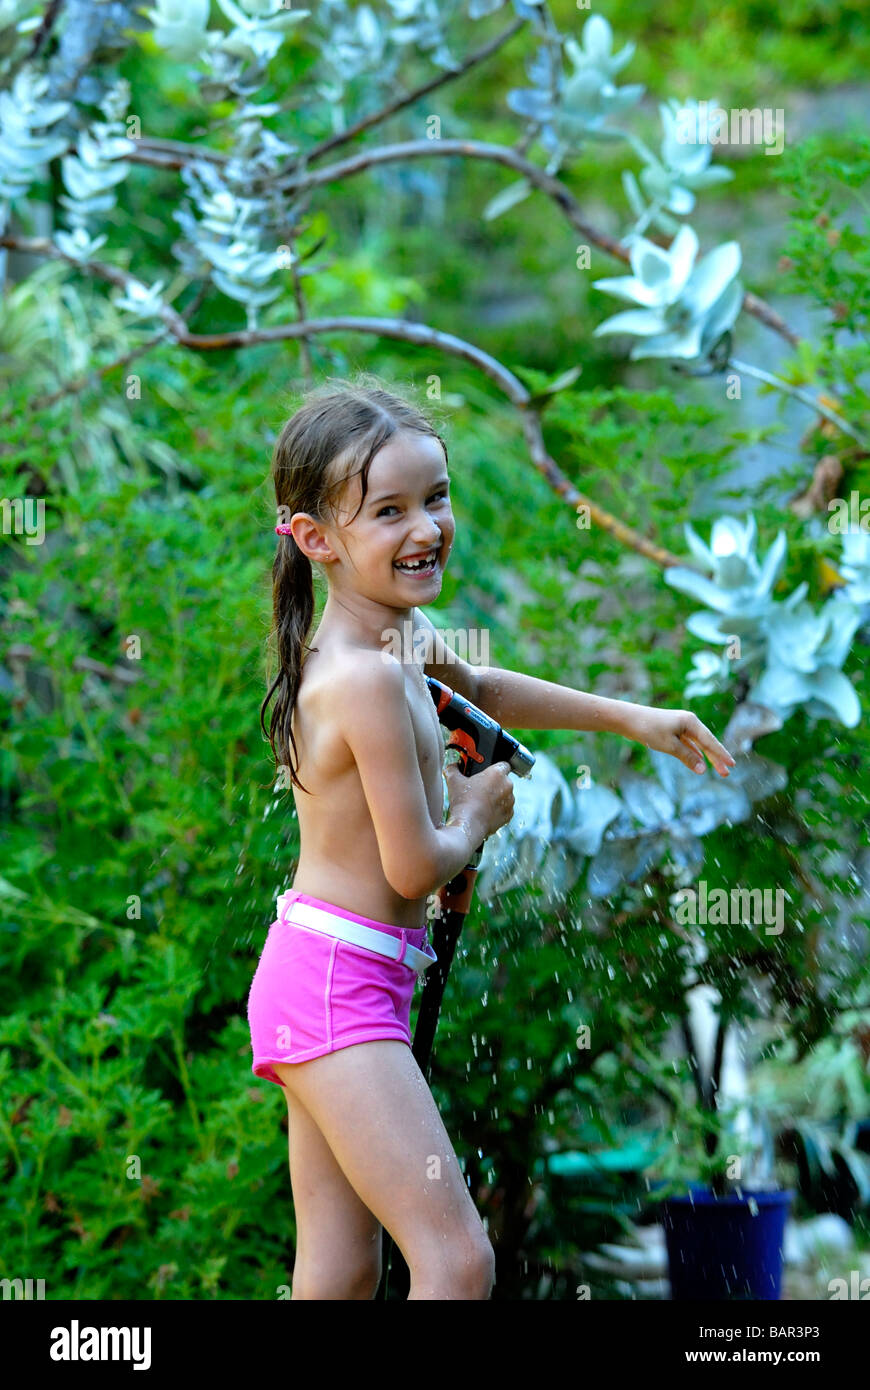 Seven Year Old Girl Playing With Hose In Backyard Garden